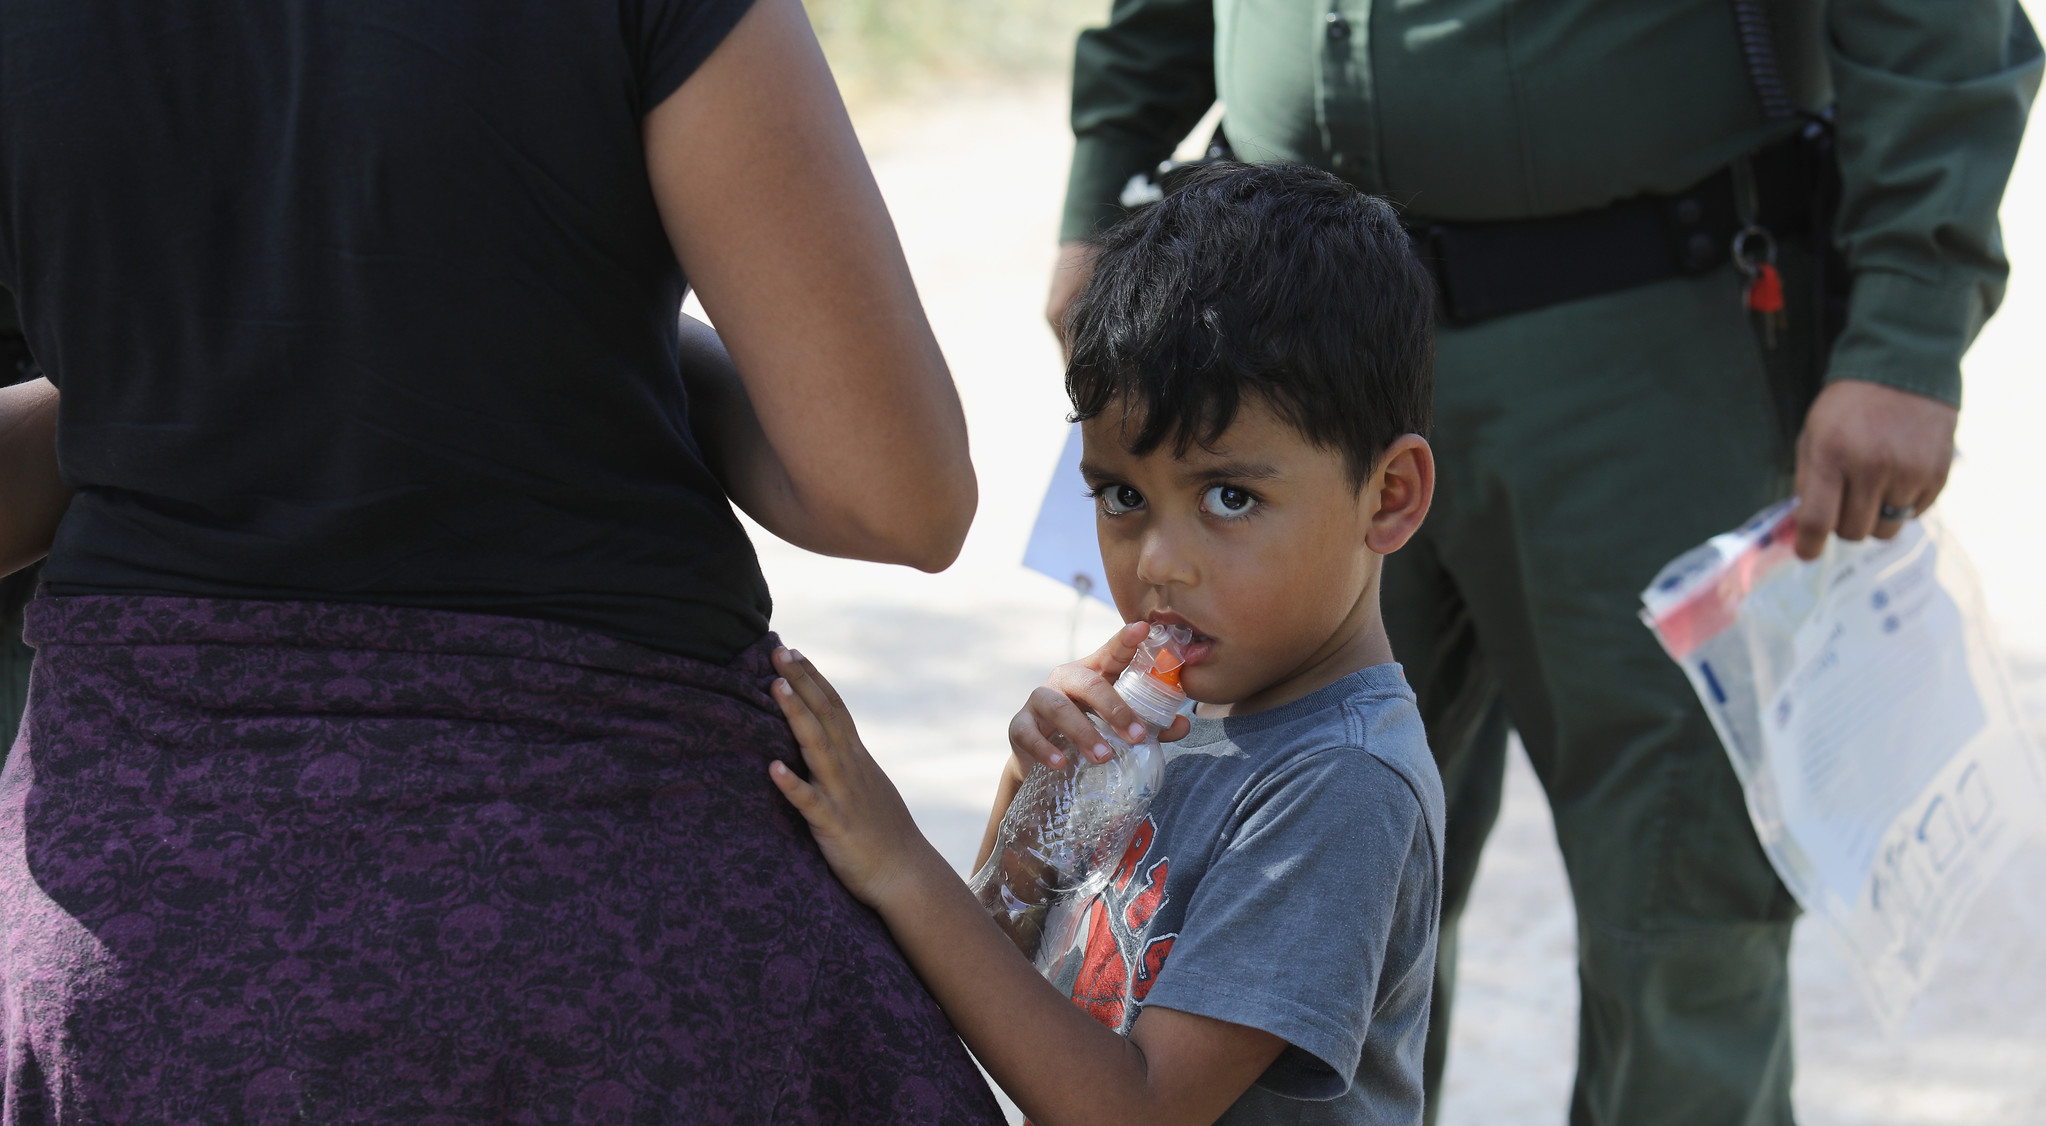 immigration agents take child from mom - HD1536×768